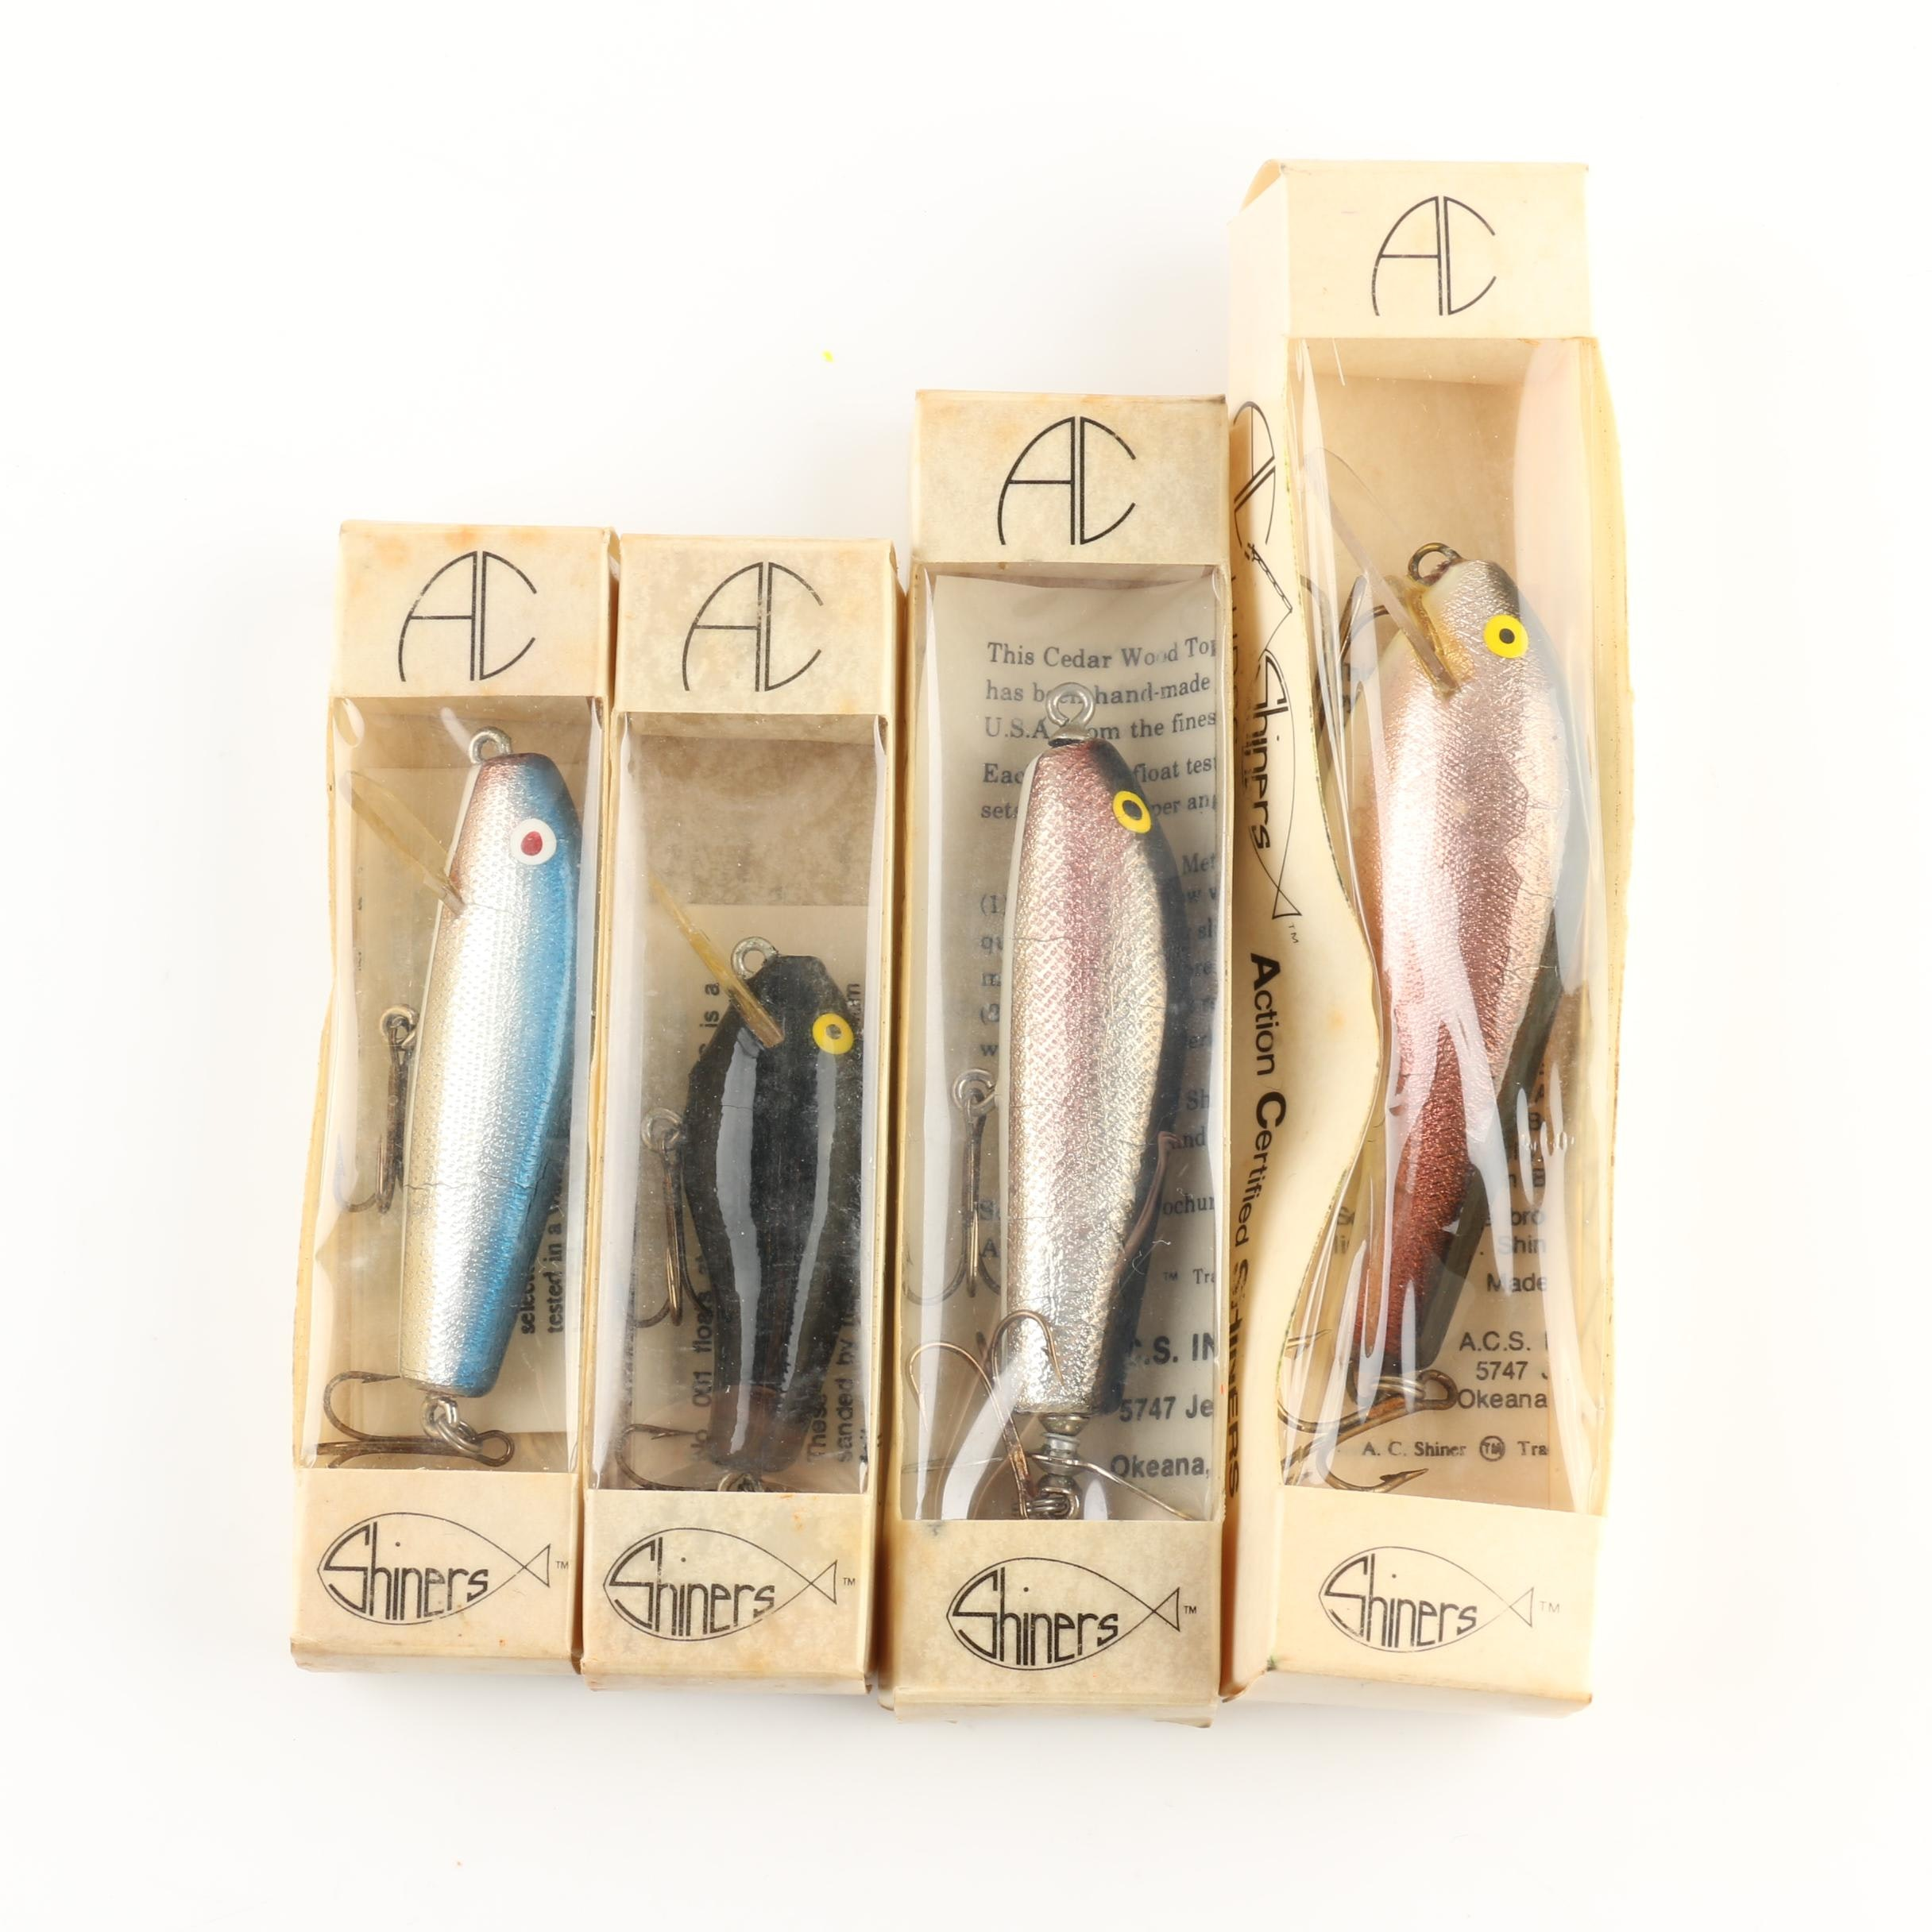 Group of Four A.C. Shiners Fishing Lures